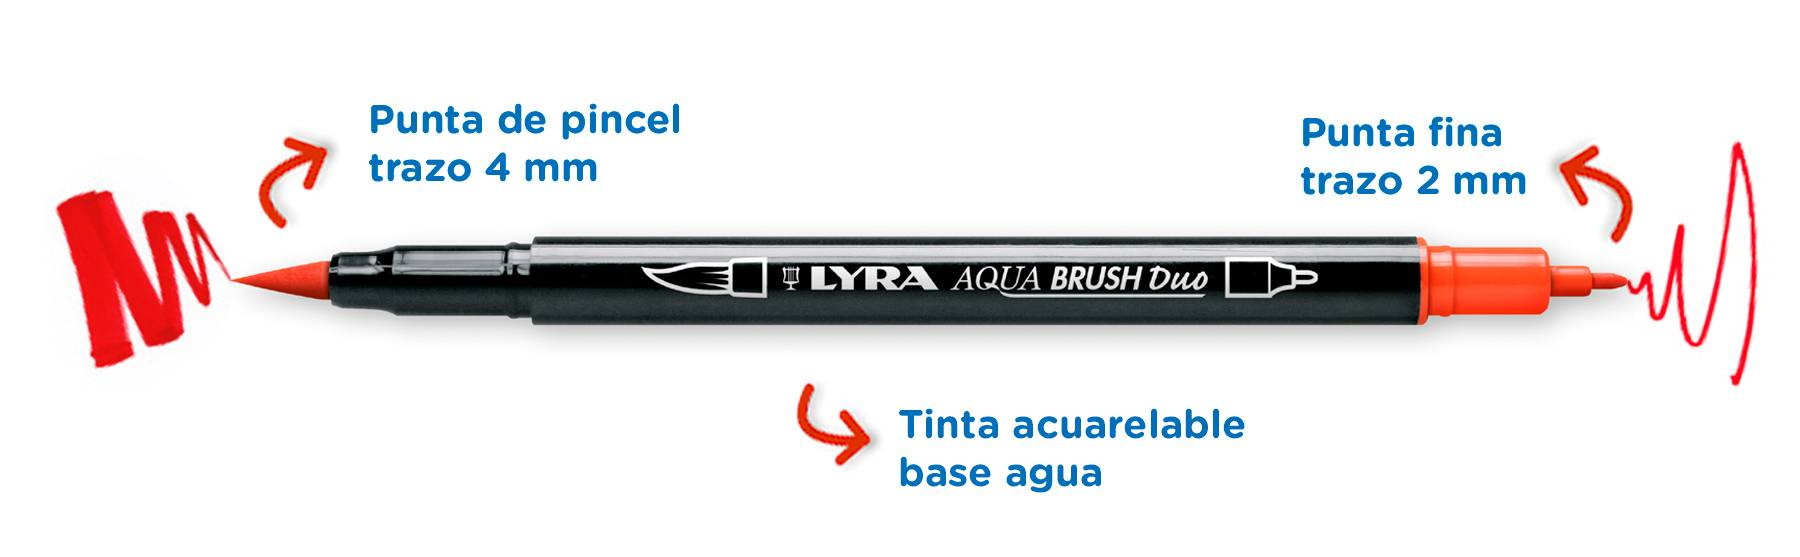 caracteristicas-rotuladores-lyra-aqua-brush-duo-copia-1